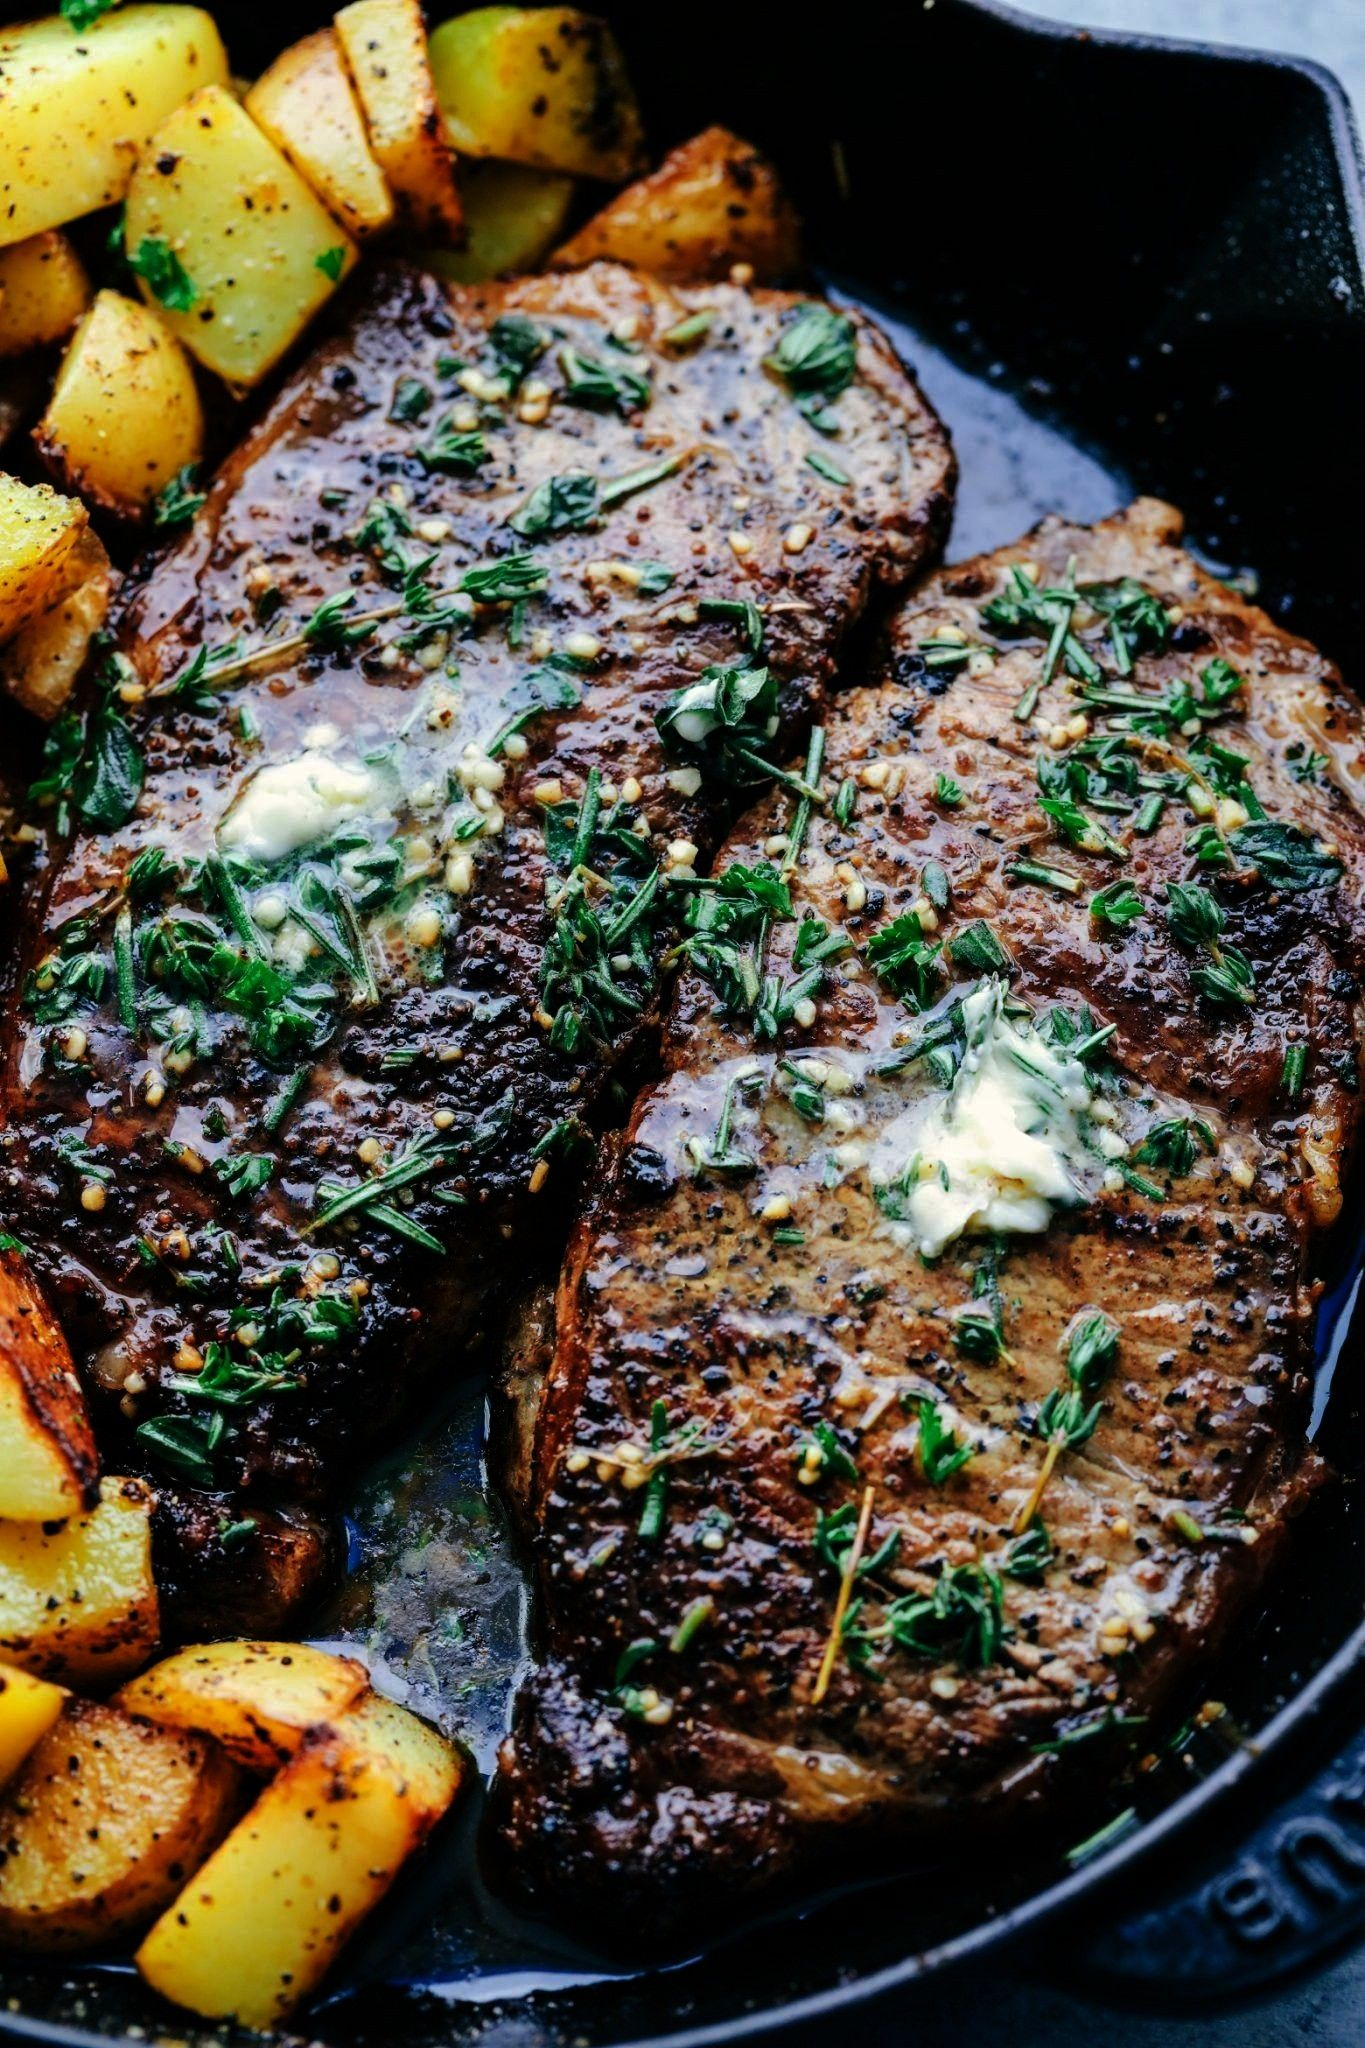 and cooked to perfection and topped with a garlic herb butter compoun... -  Pan seared and cooked t